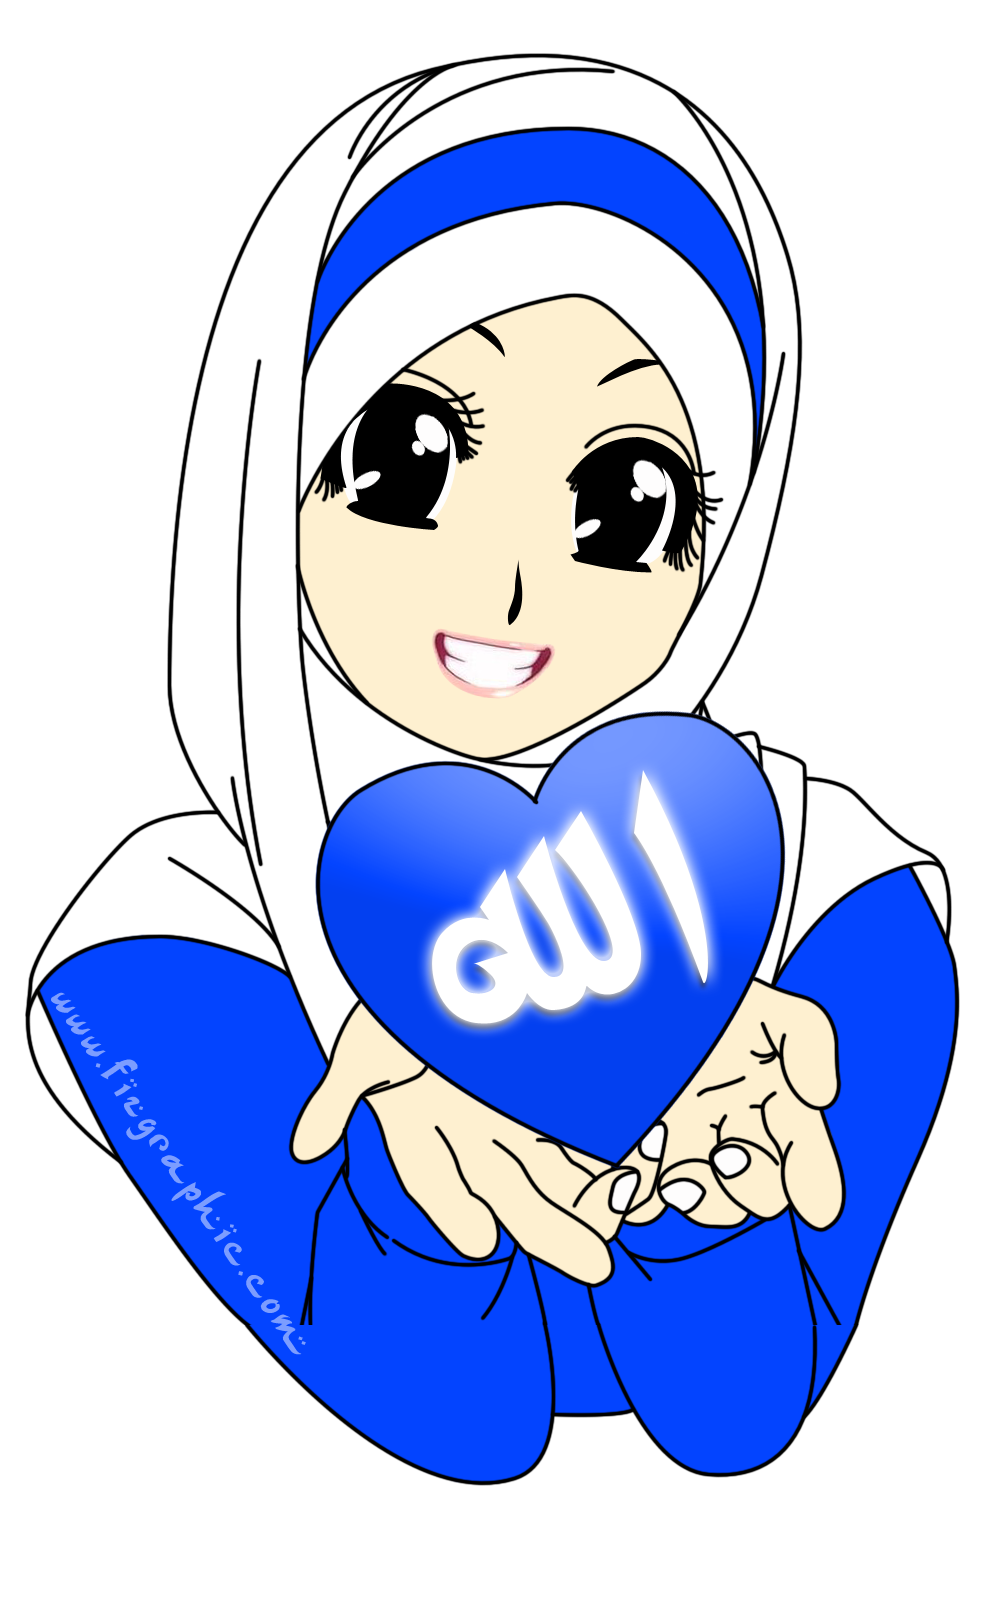 Muslimah cute cartoon